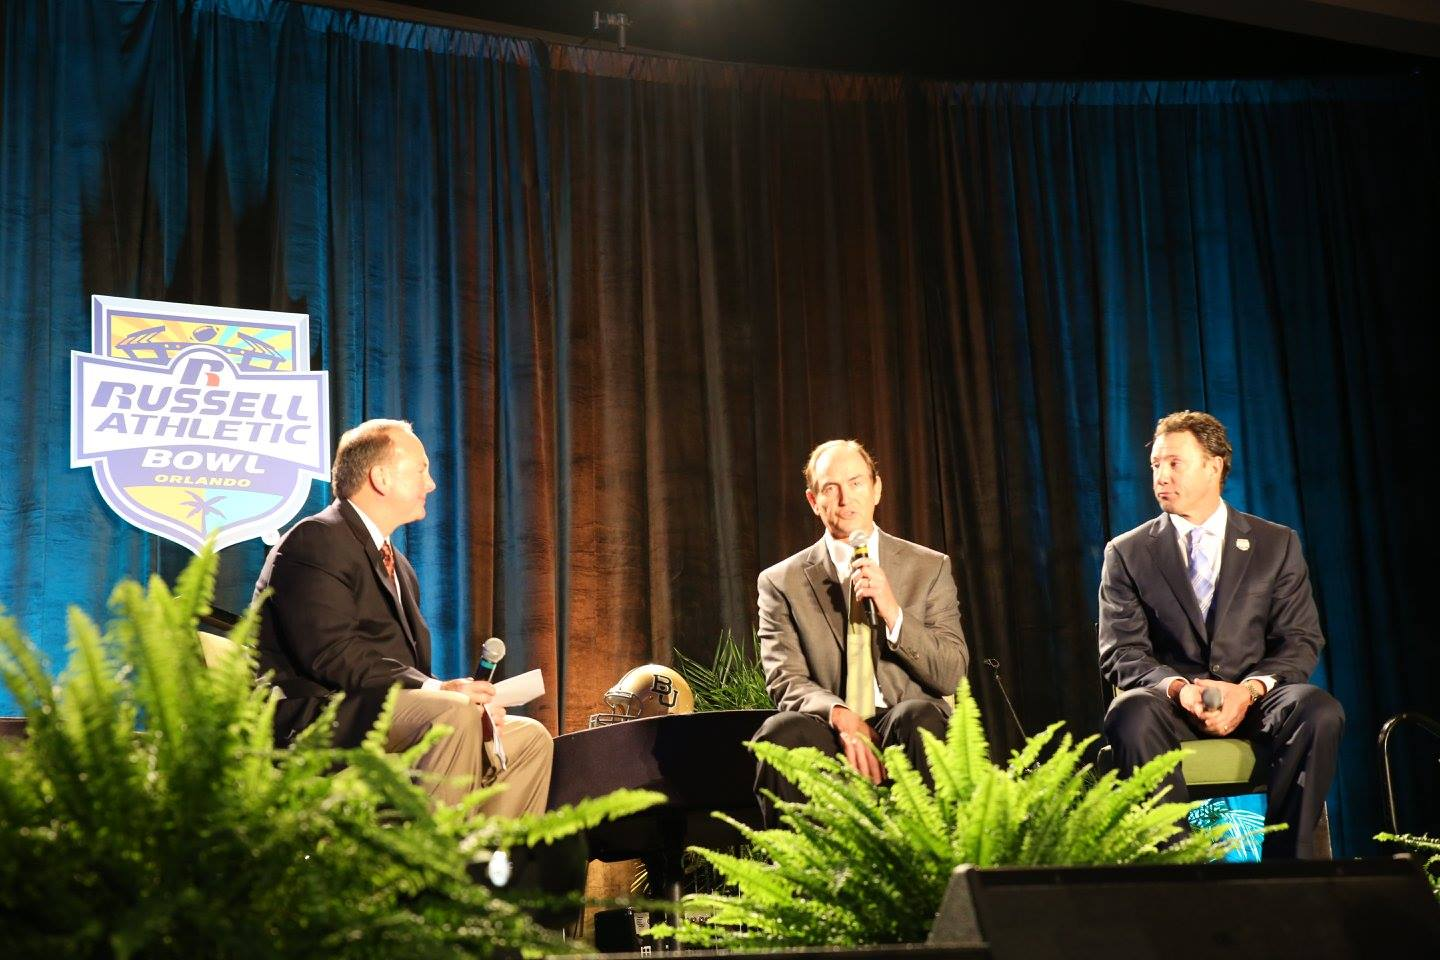 Dr. Jerry Punch interviews Baylor Head Coach Art Briles (center) and University of North Carolina Head Coach Larry Fedora (right) during the Russell Athletic Bowl Kickoff Luncheon at Hilton Orlando Monday. Photo: Mellissa Thomas/Florida National News.